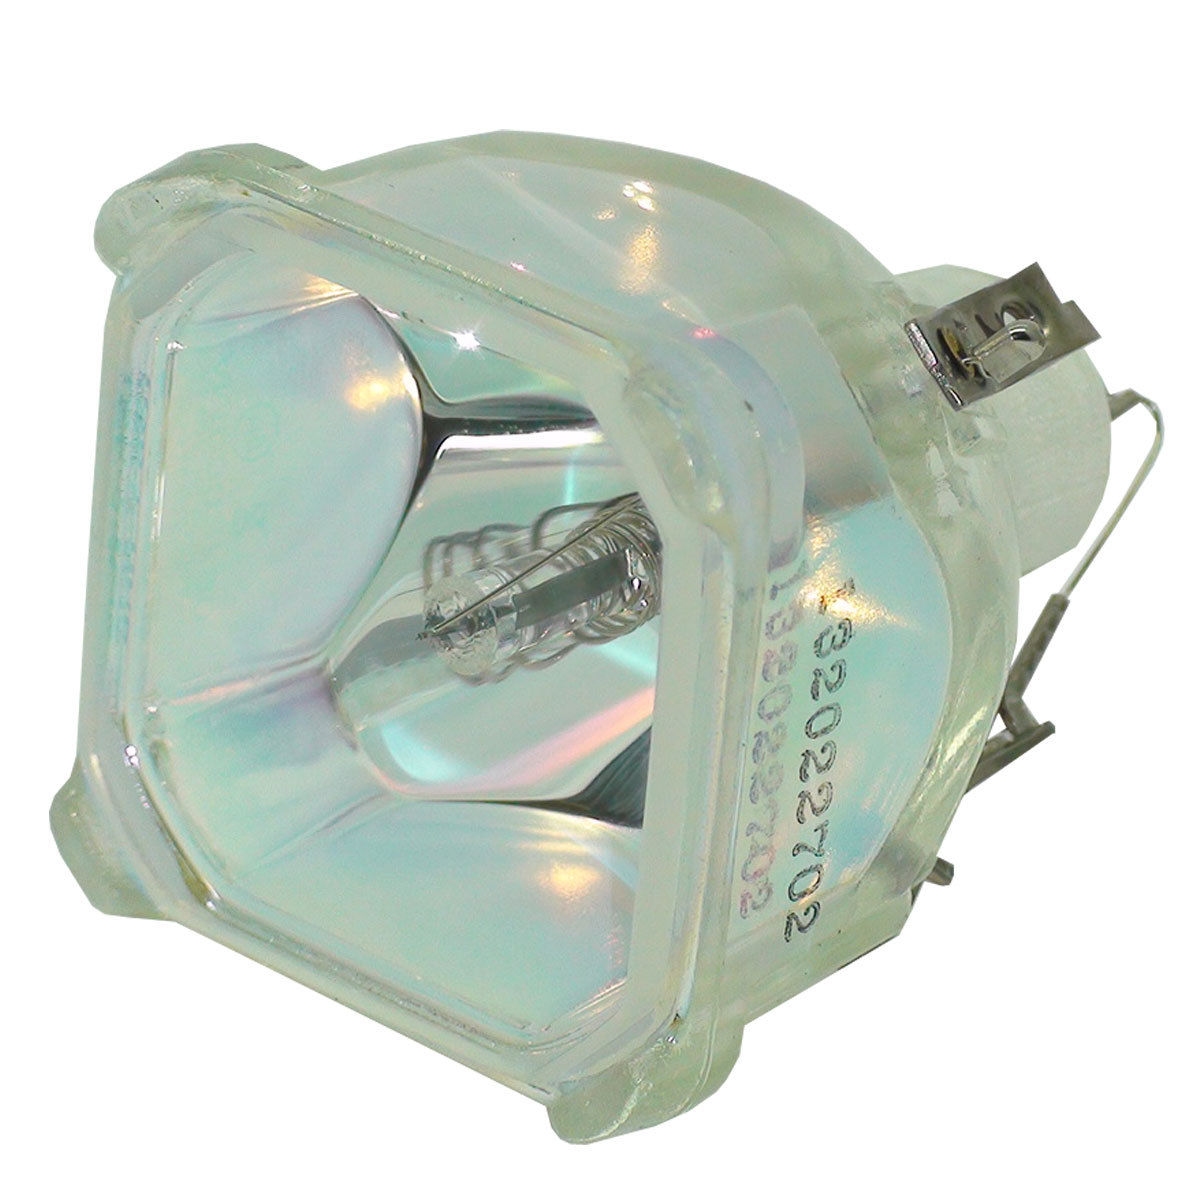 Compatible Bare Bulb EP7750LK 78-6969-9565-9 for 3M MP7740i MP7740iA X40 X40i Projector Lamp Bulbs without housing